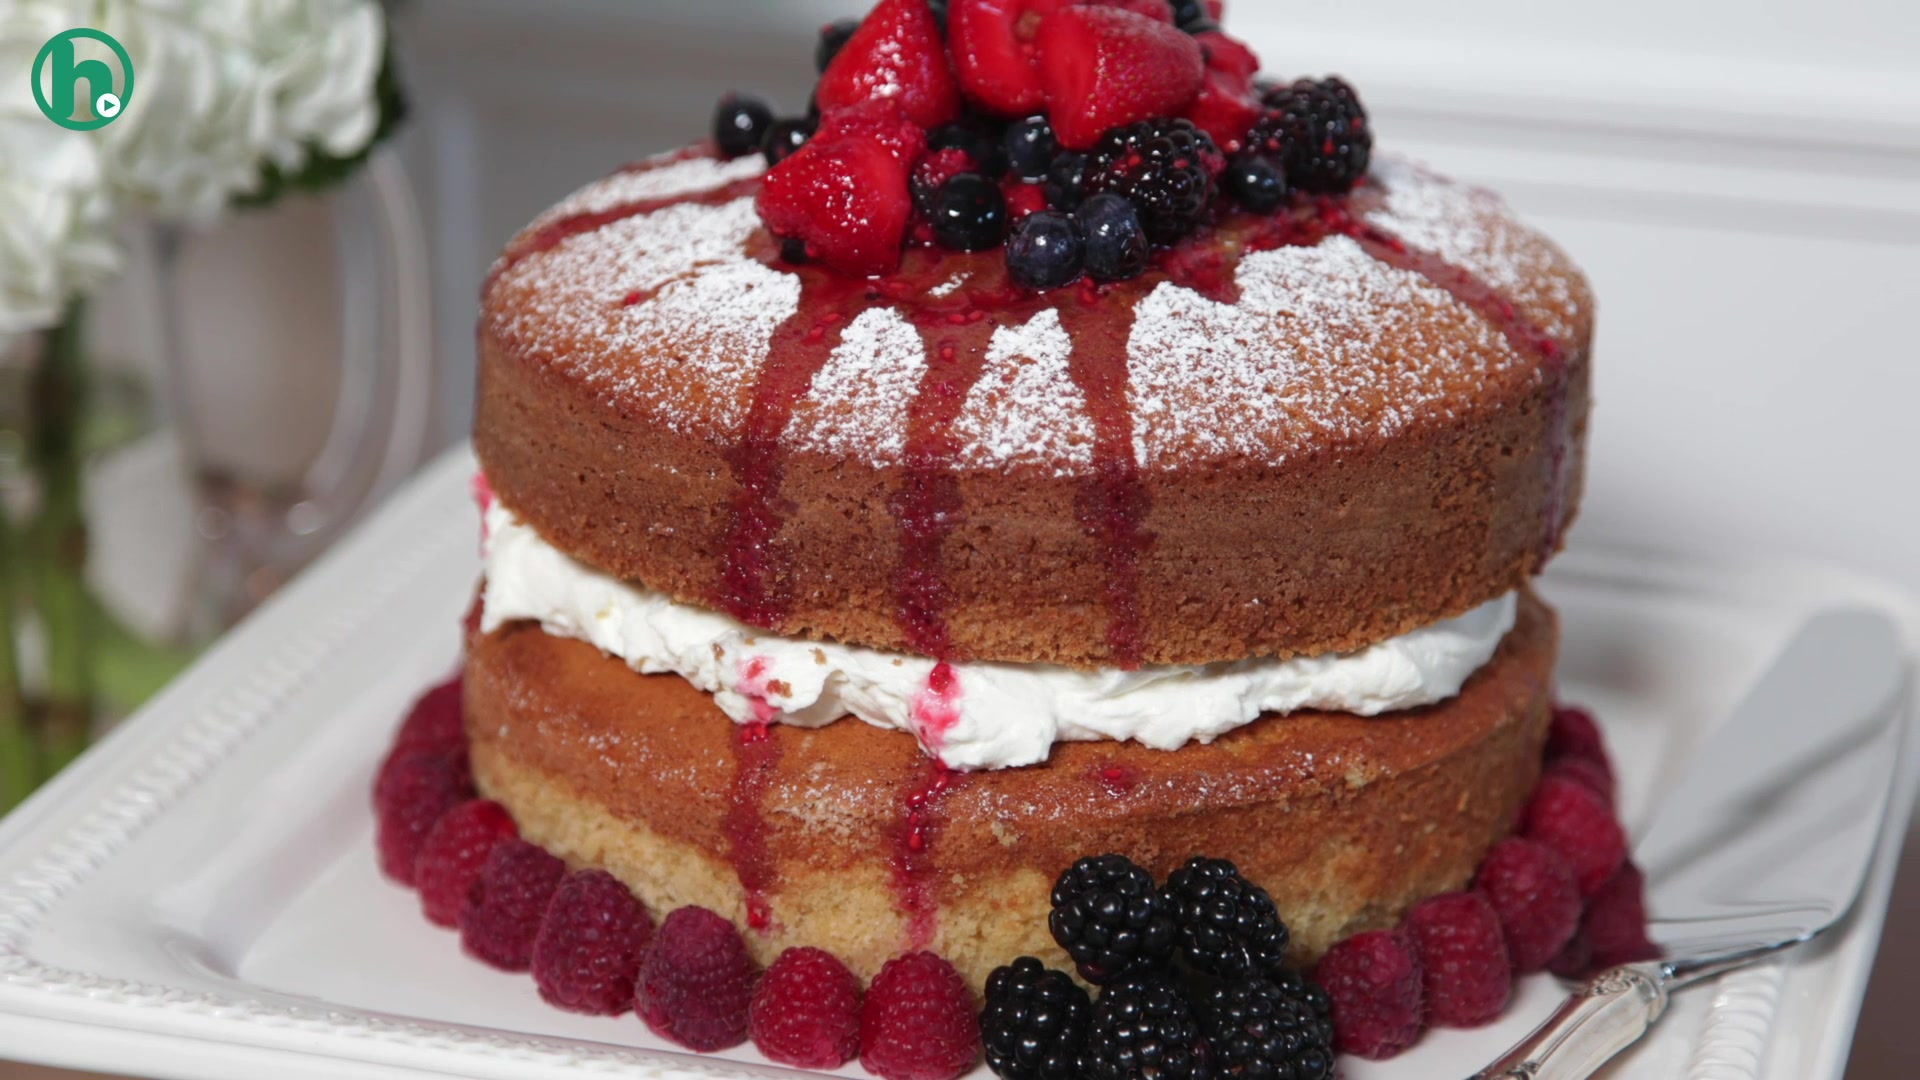 How to Make a Buttermilk Cake With Mascarpone Cream and Berries